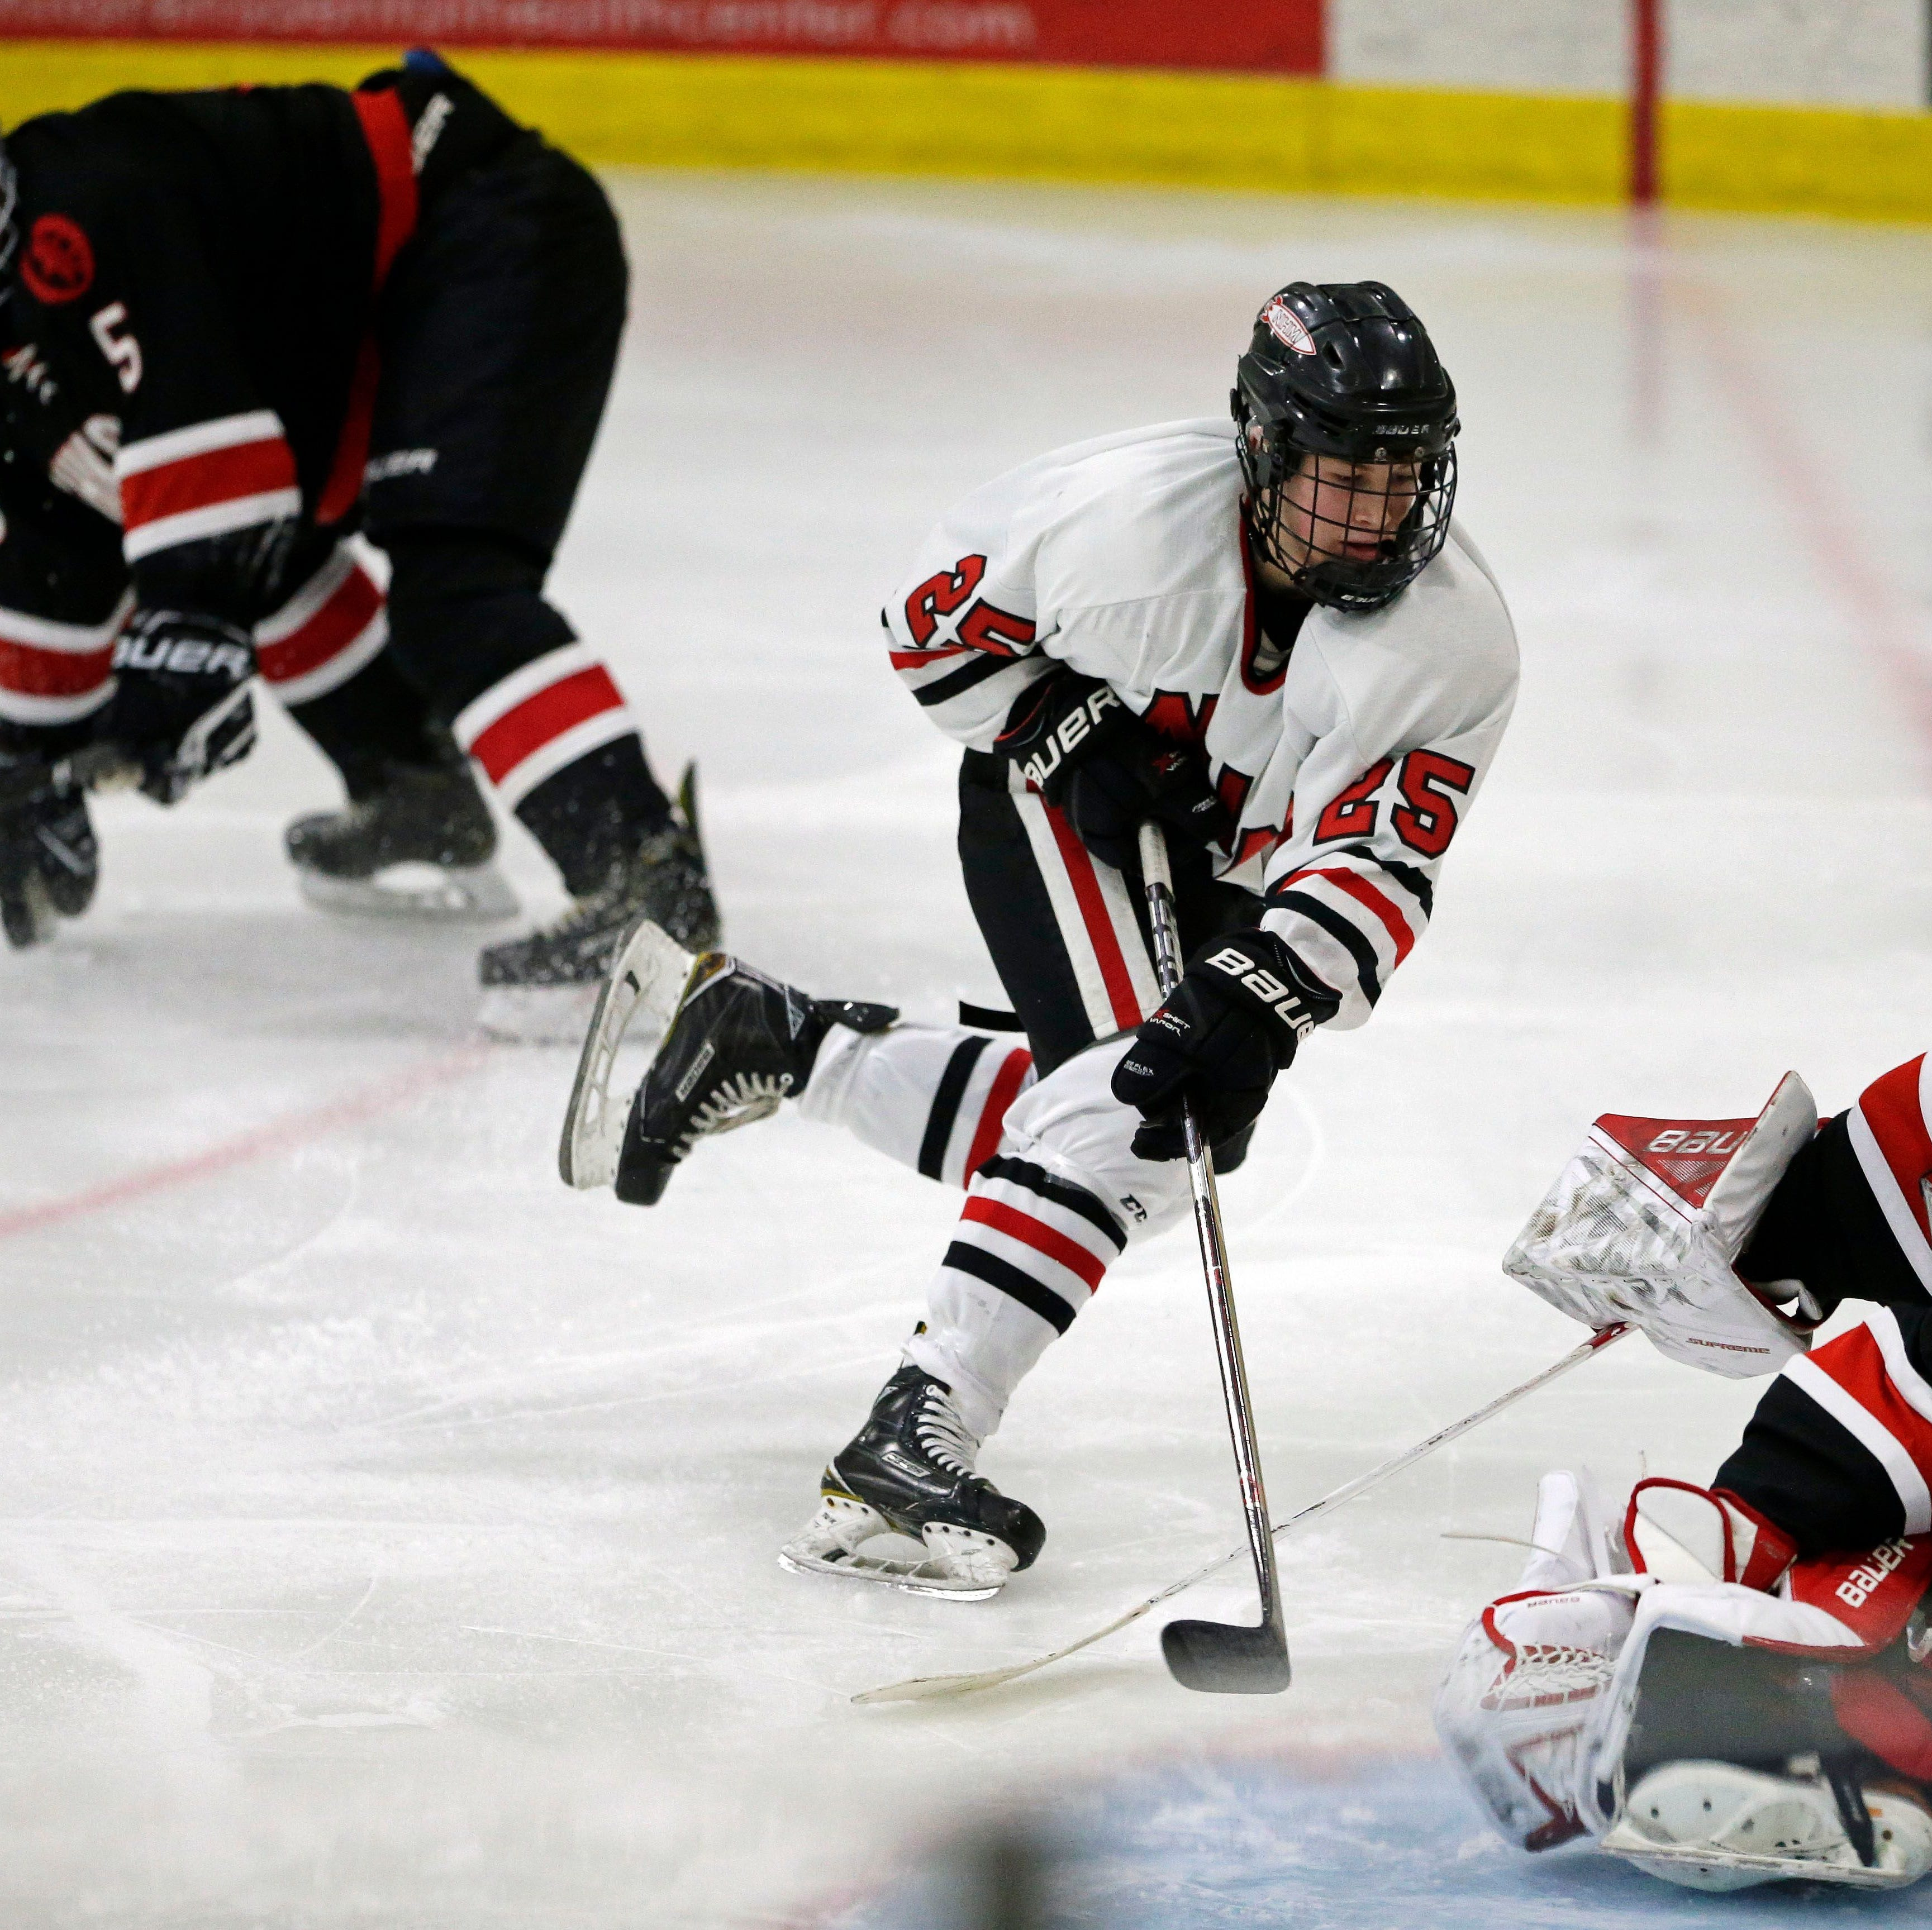 Rockets face defending champion Hudson in first trip to state hockey tournament